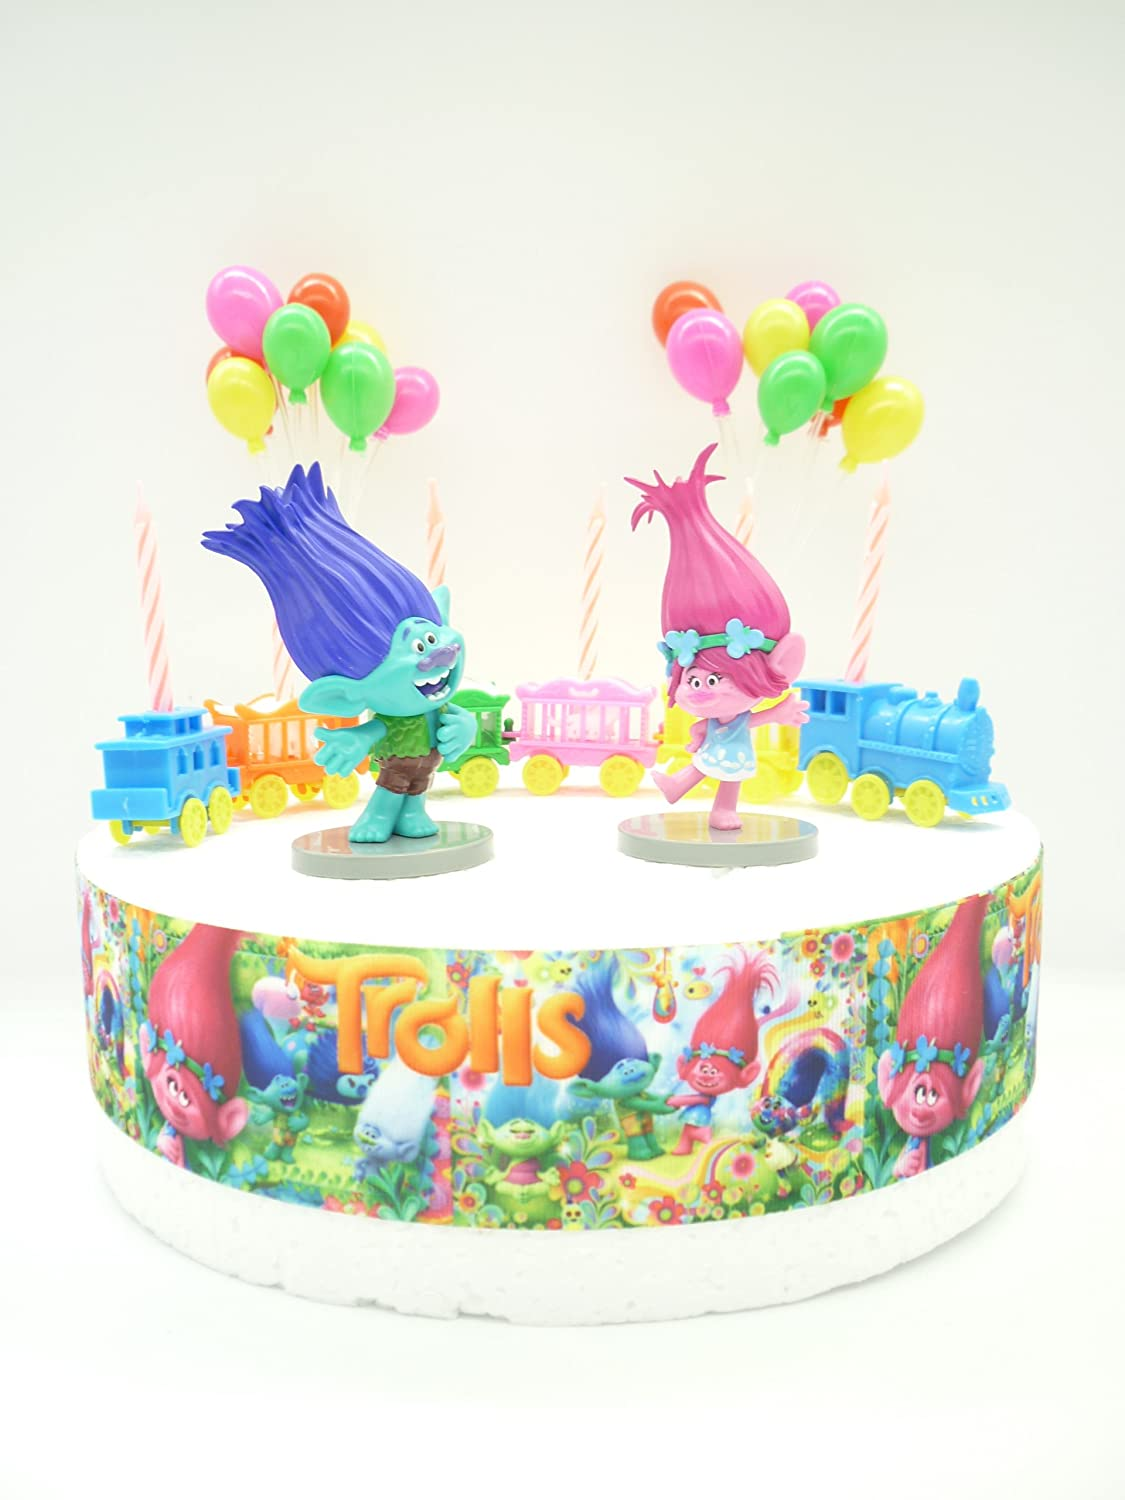 OSK Trolls POPPY & BRANCH Birthday Cake Decoration Set: Amazon.co.uk ...